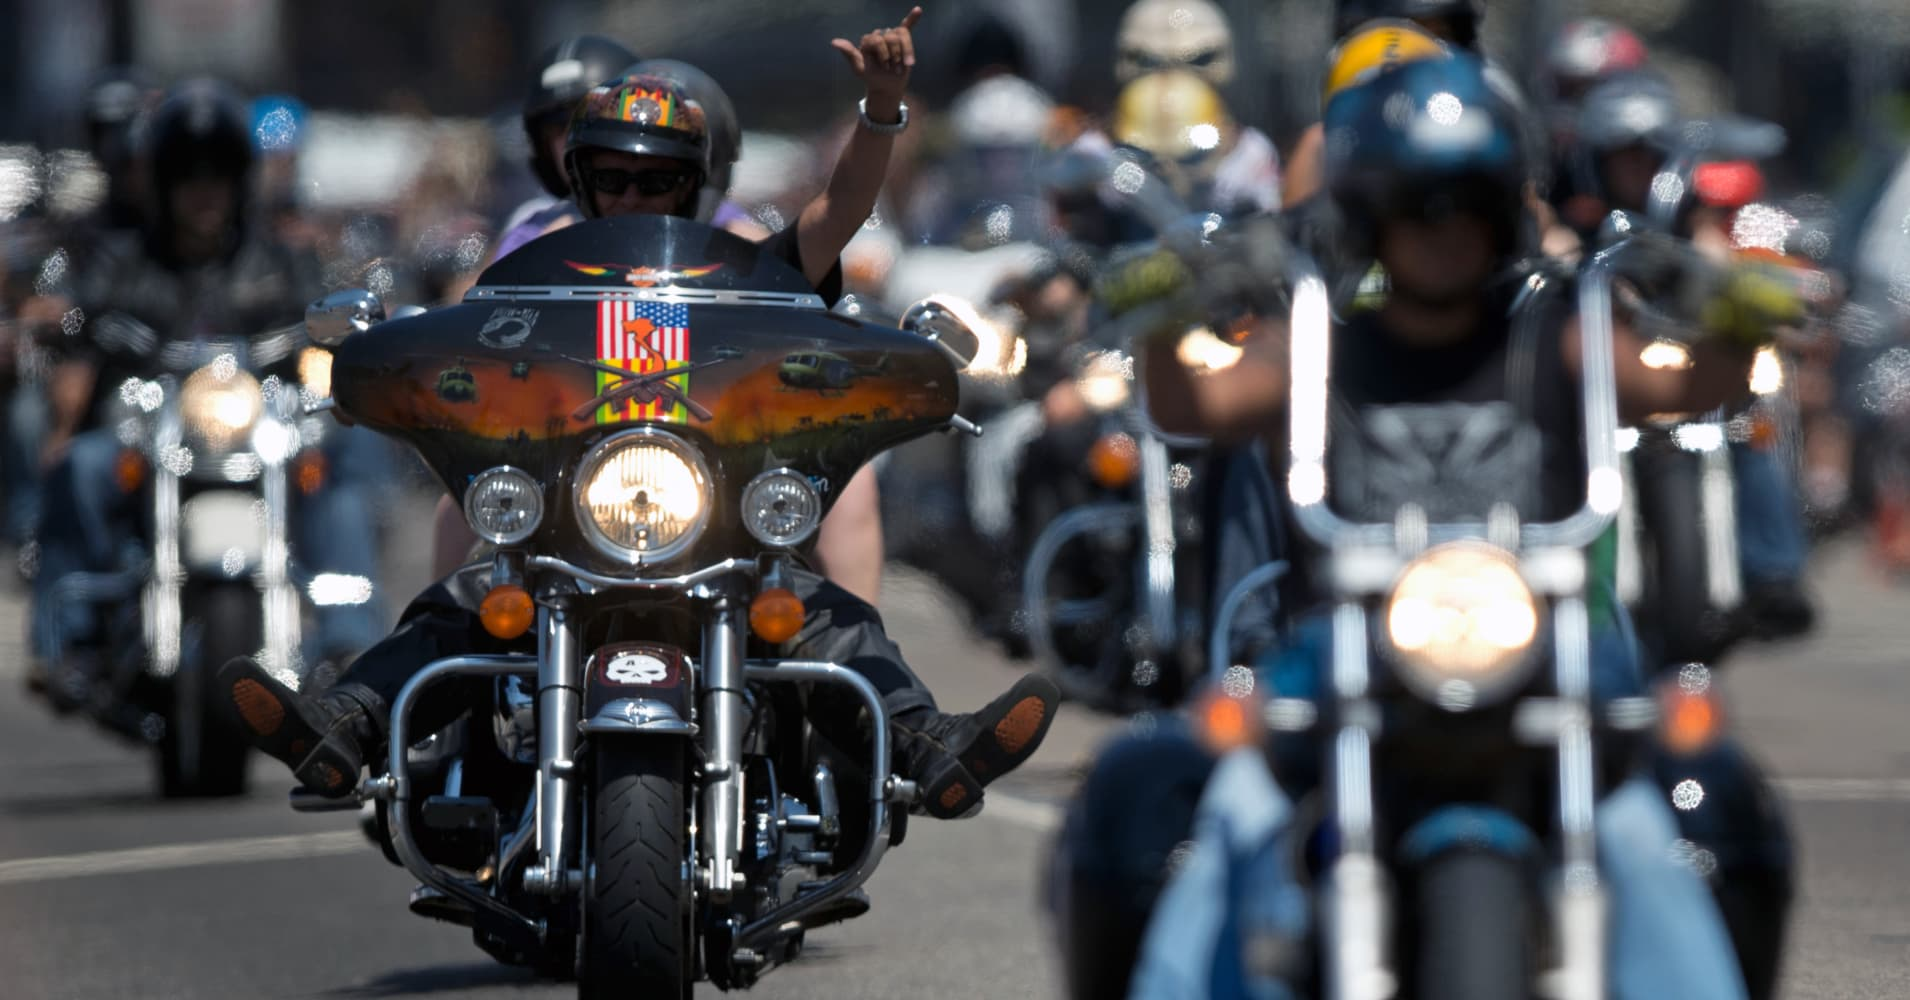 Harley-Davidson may be out of options other than moving some production overseas: Analyst